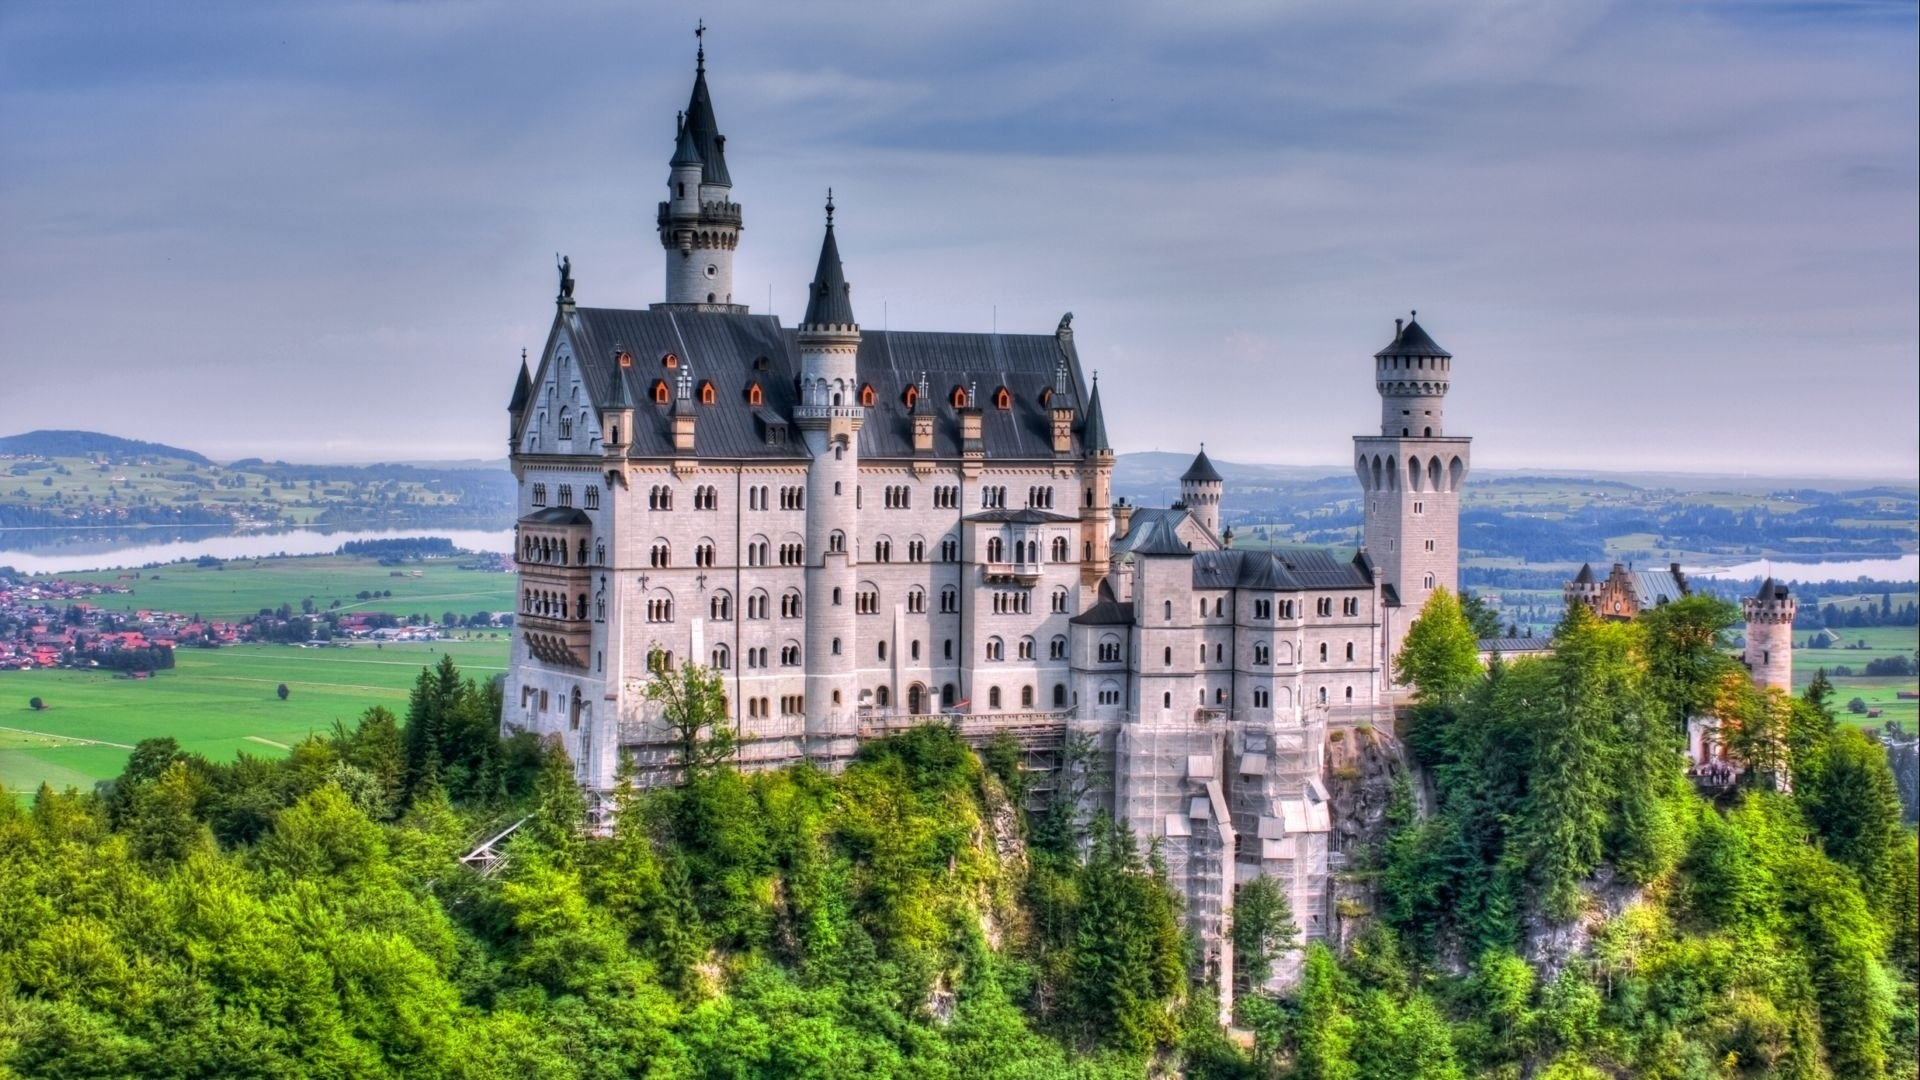 Germany Wallpapers Best Wallpapers | HD Wallpapers | Pinterest | Hd  wallpaper, Wallpaper and Wallpaper backgrounds